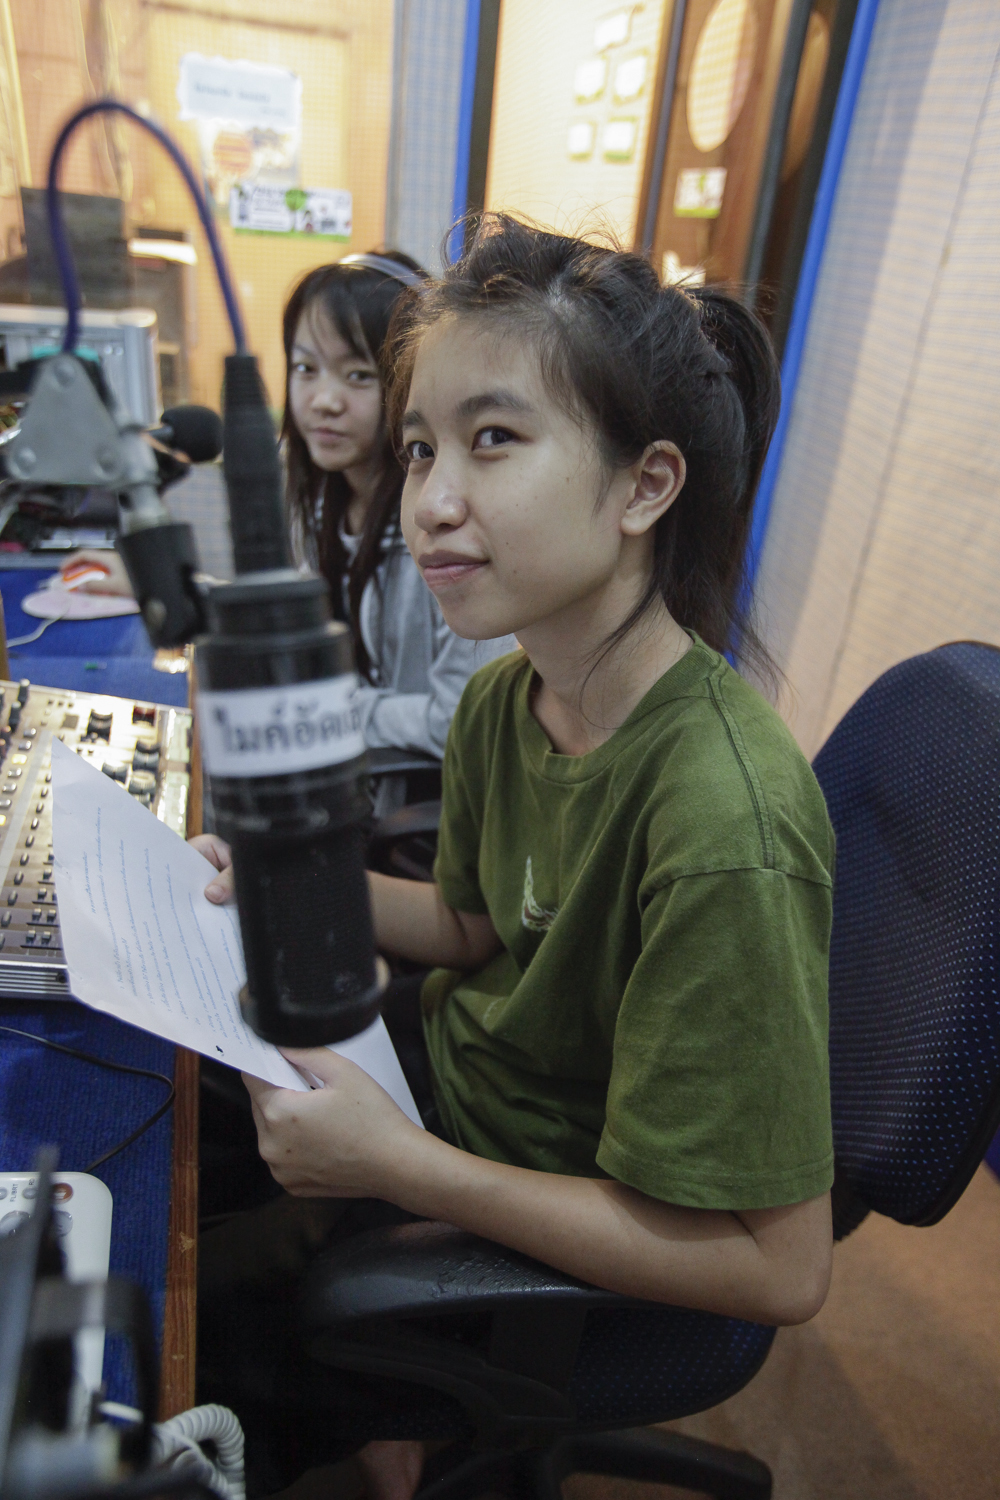 Nordthailand, Kindernothilfe, DEPDC, Child Voice Radio, Child Help Line